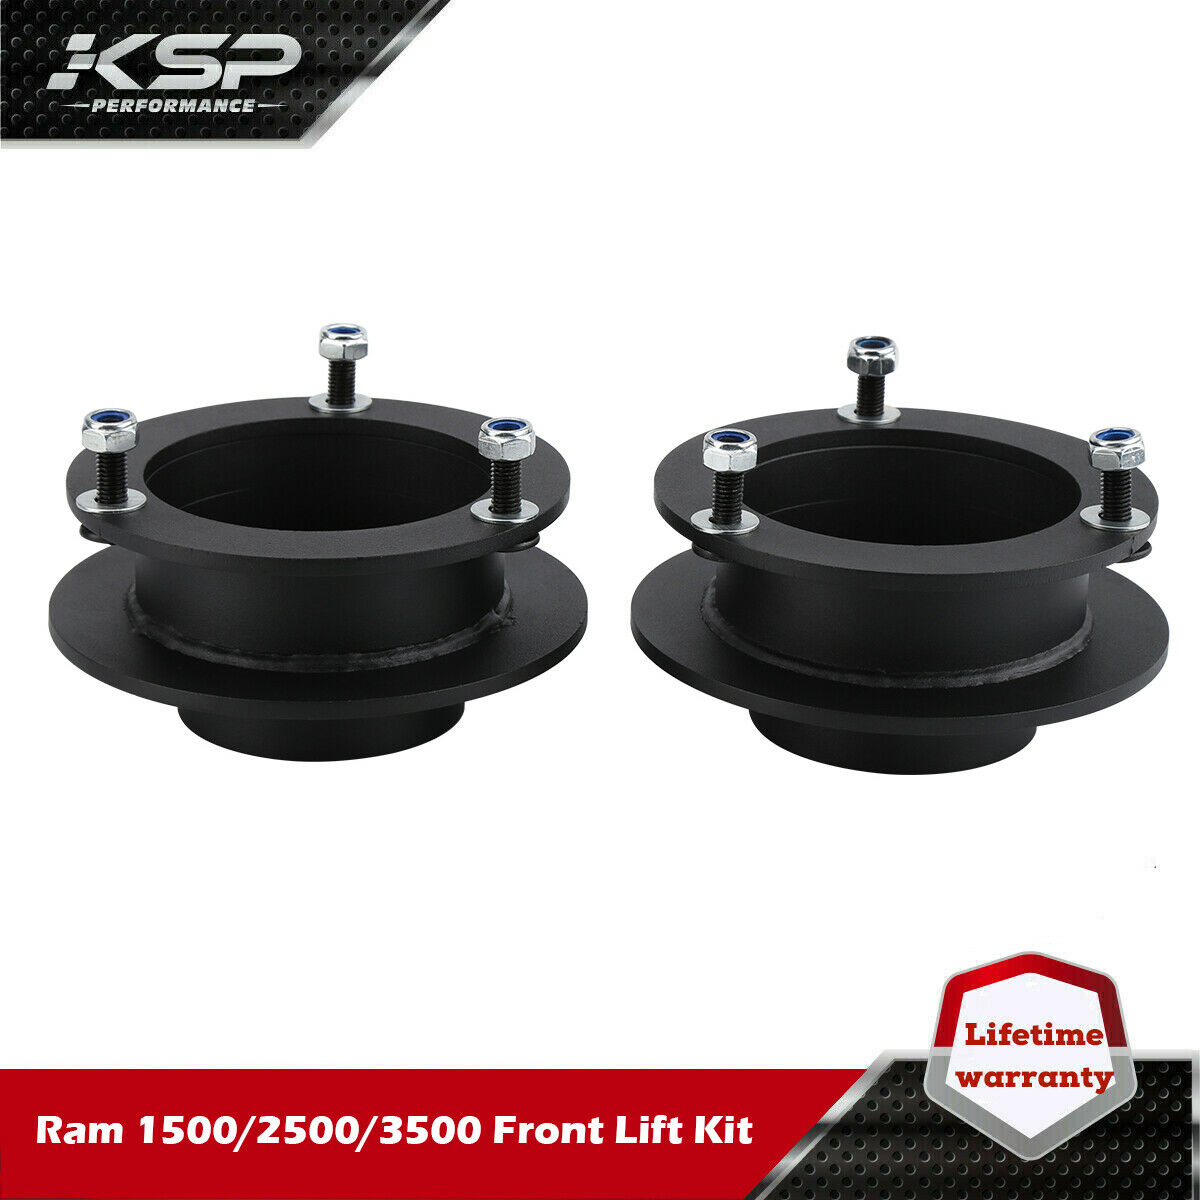 Black Steel Coil Spring Spacers 4WD ONLY 2.25 Lift 1994-2012 Ram 3500 for 1994-2001 Ram 1500 Front Dodge Ram Leveling Kit 1994-2013 Ram 2500